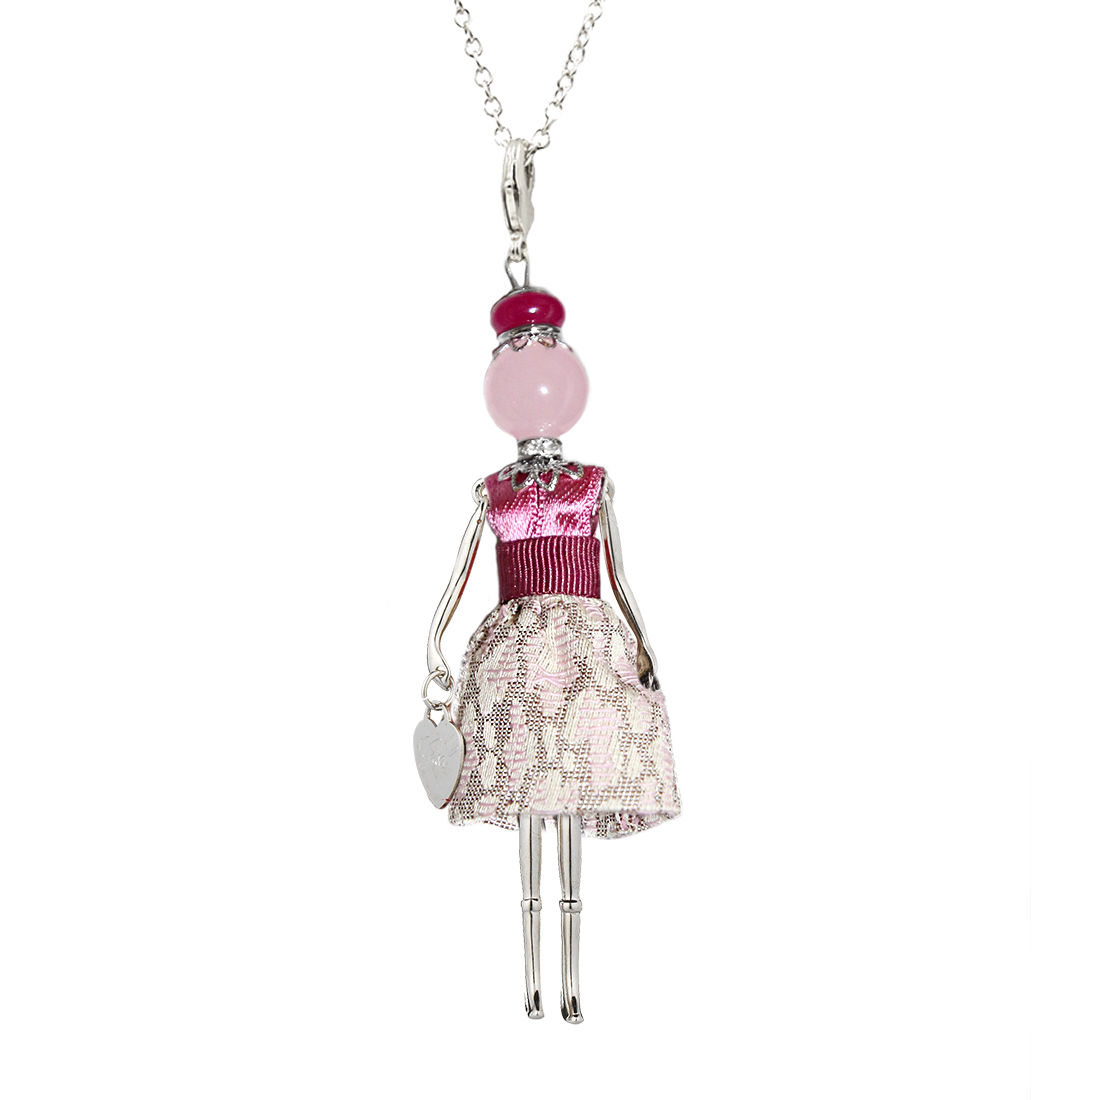 Gisel Bois De Roses Blyte Silver Necklace - High Street Jewelry